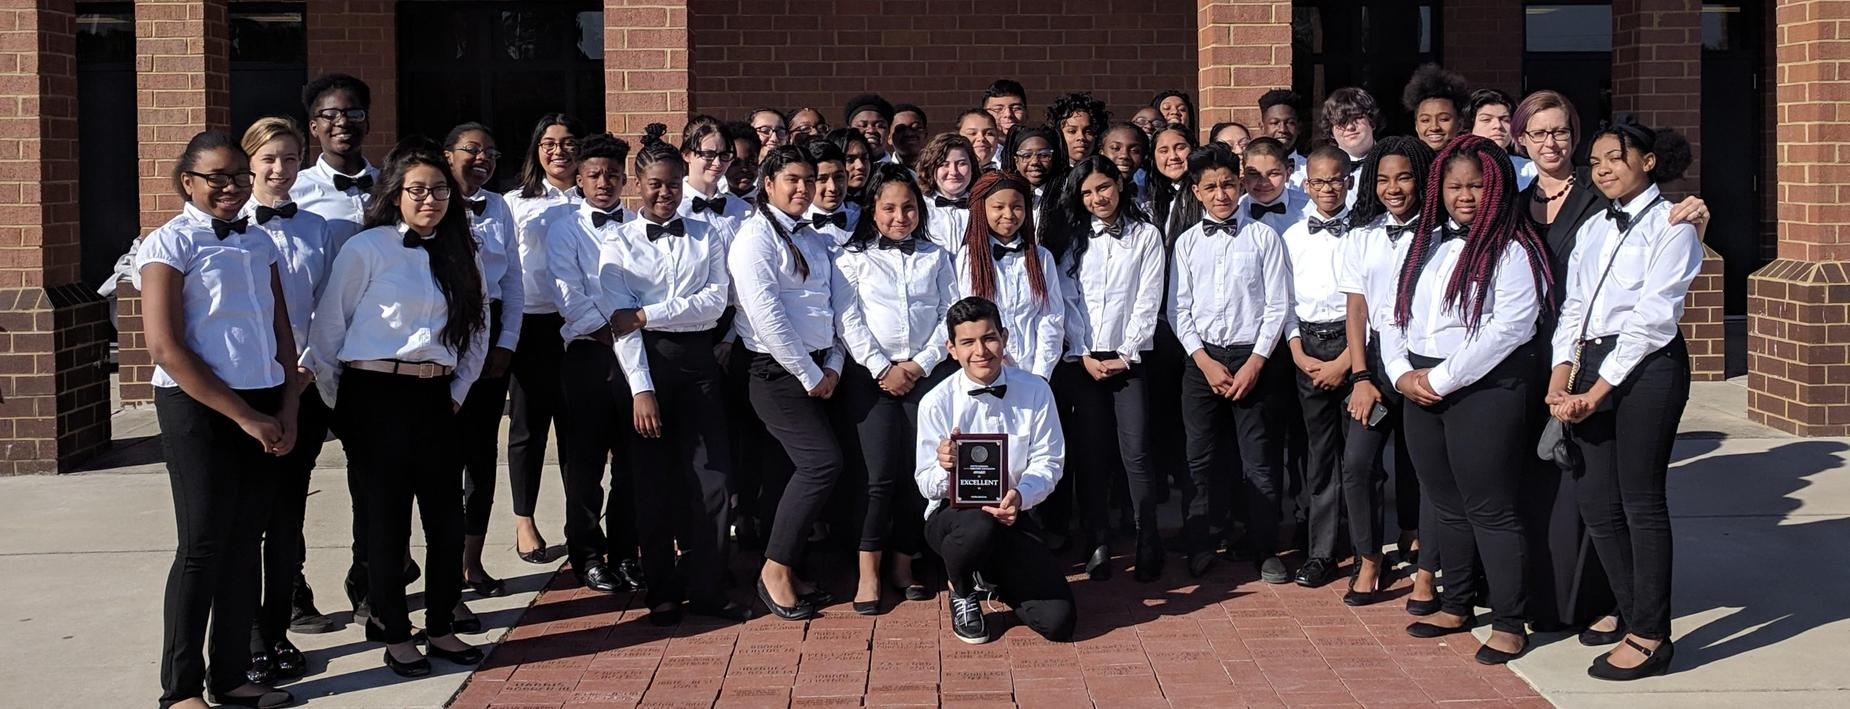 Hardeeville-Ridgeland Middle School Advanced Band Earns Excellent Rating at State Assessment